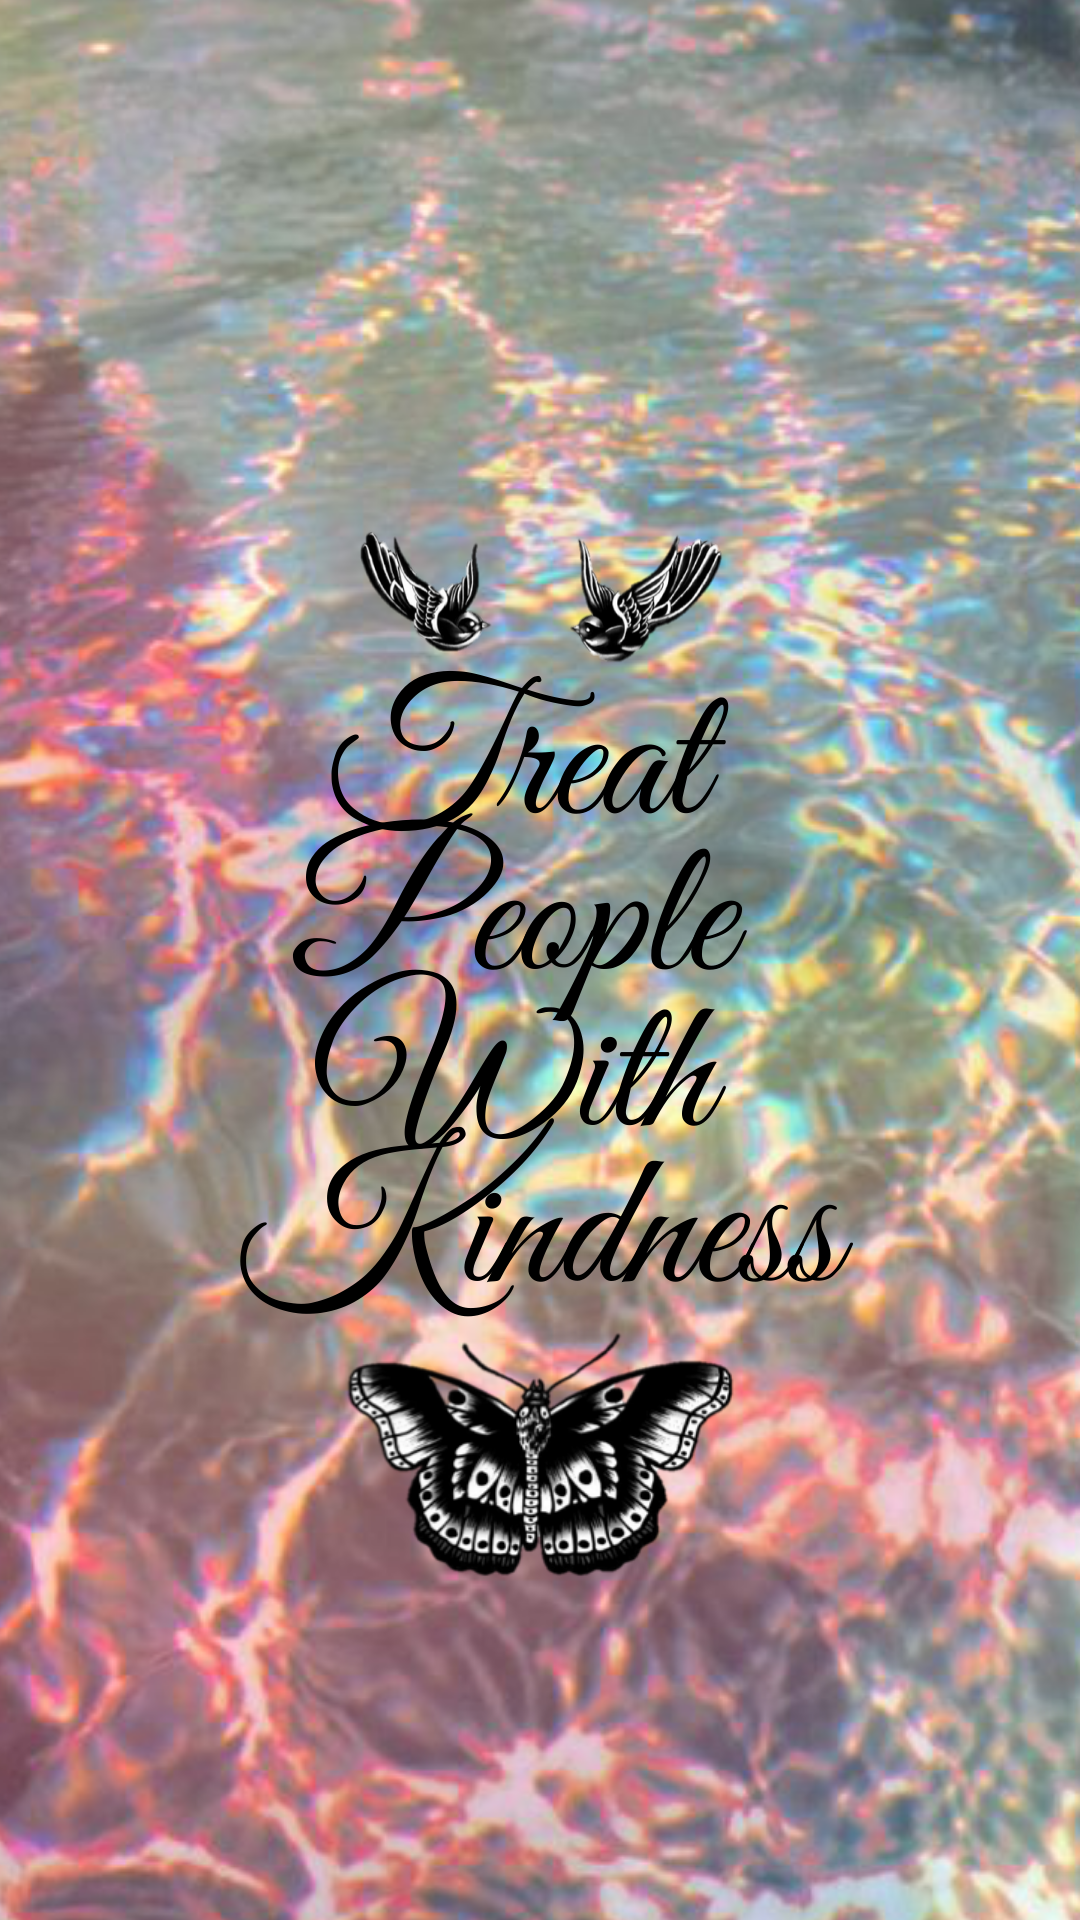 Tpwk Lock Screen Harry Styles Butterfly Harry Styles Quotes Harry Styles Tattoos